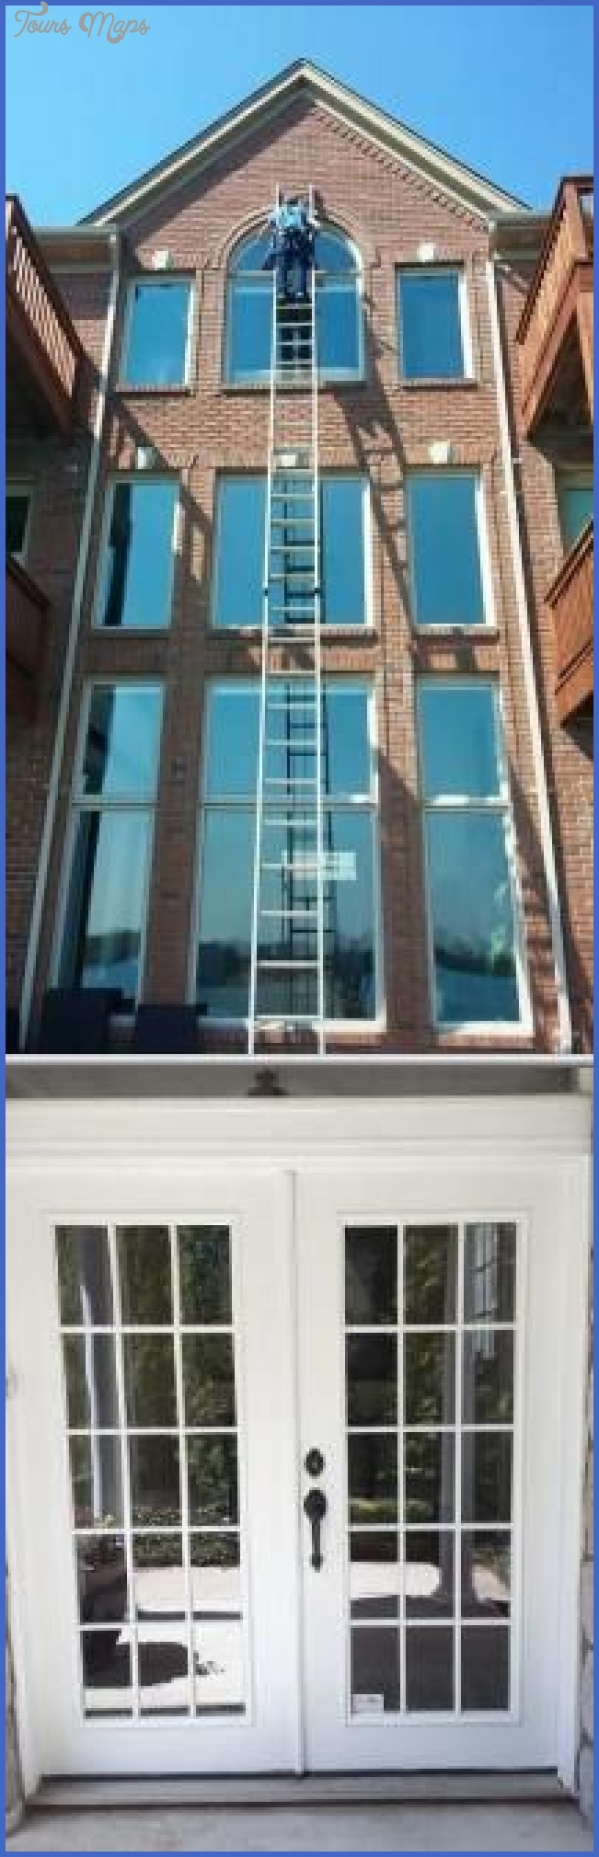 commercial building choosing the right window cleaning company 16 Commercial Building: Choosing the Right Window Cleaning Company?